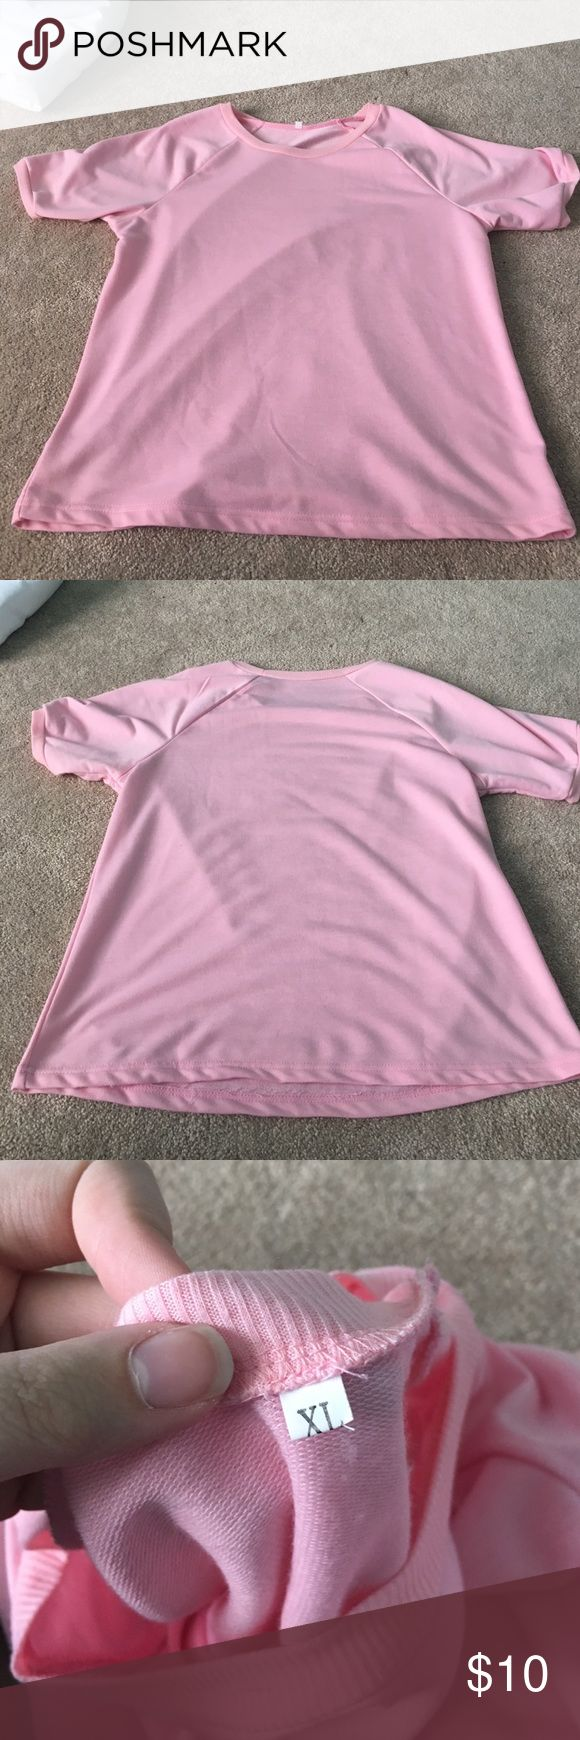 Baby Pink Tee Good condition. Never worn. Purchased from online thrift shop-like thing but didn't fit correctly. No brand listed. *Listed as Urban Outfitters because no brand on tag* Urban Outfitters Tops Tees - Short Sleeve